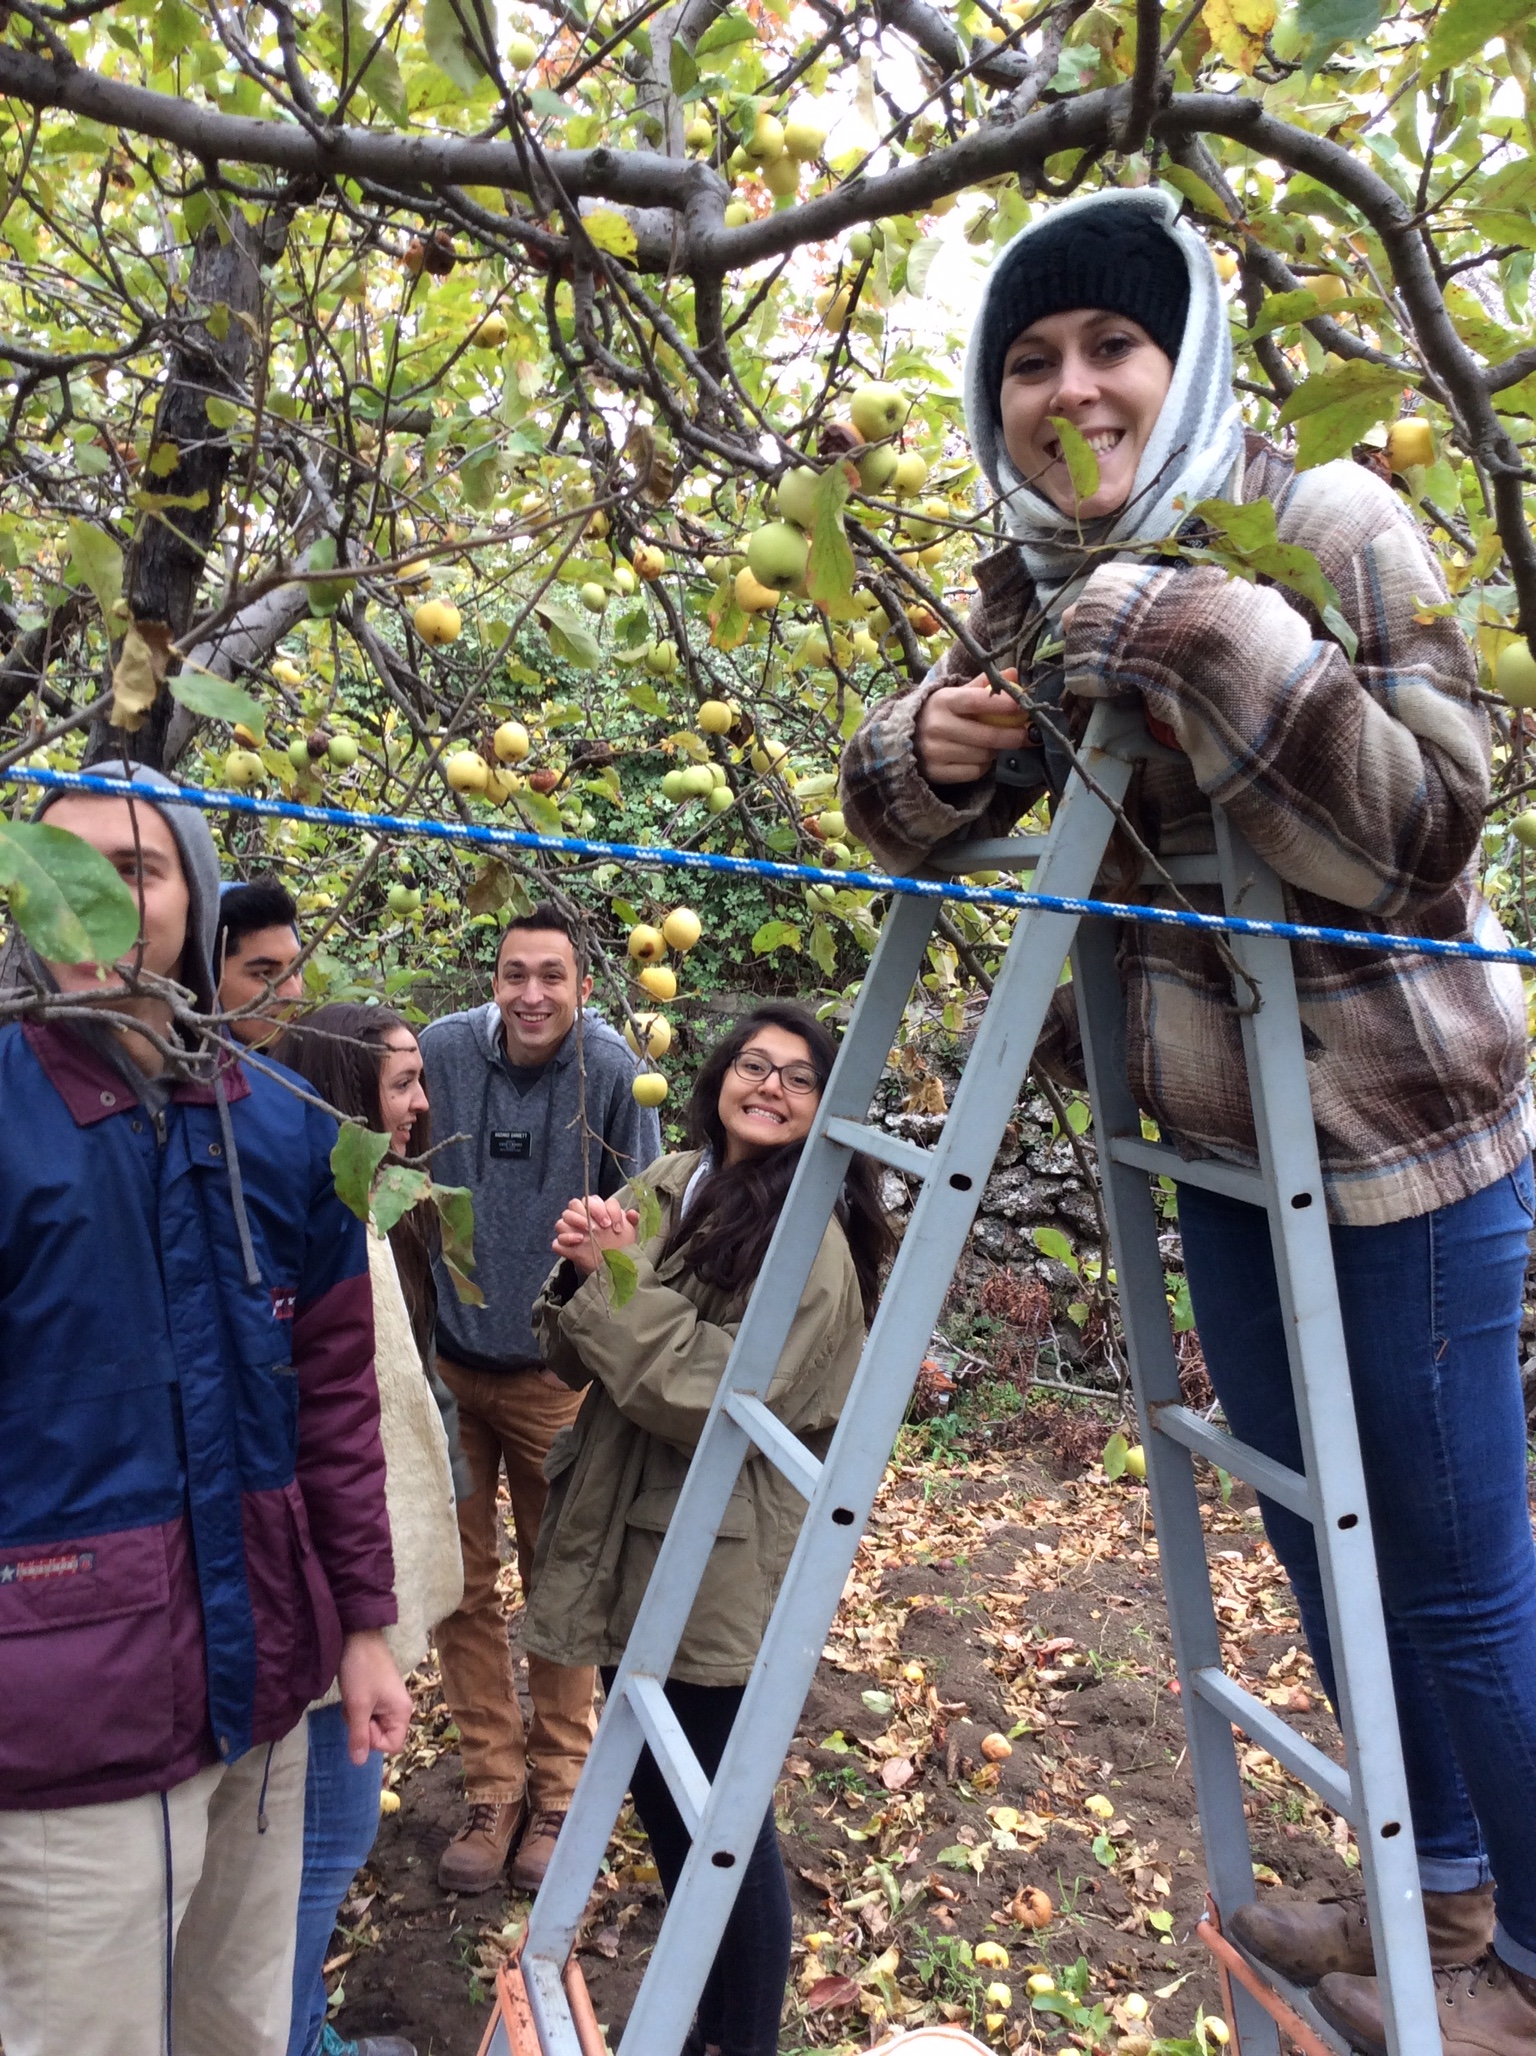 Apple-picking service in Catania, Italy